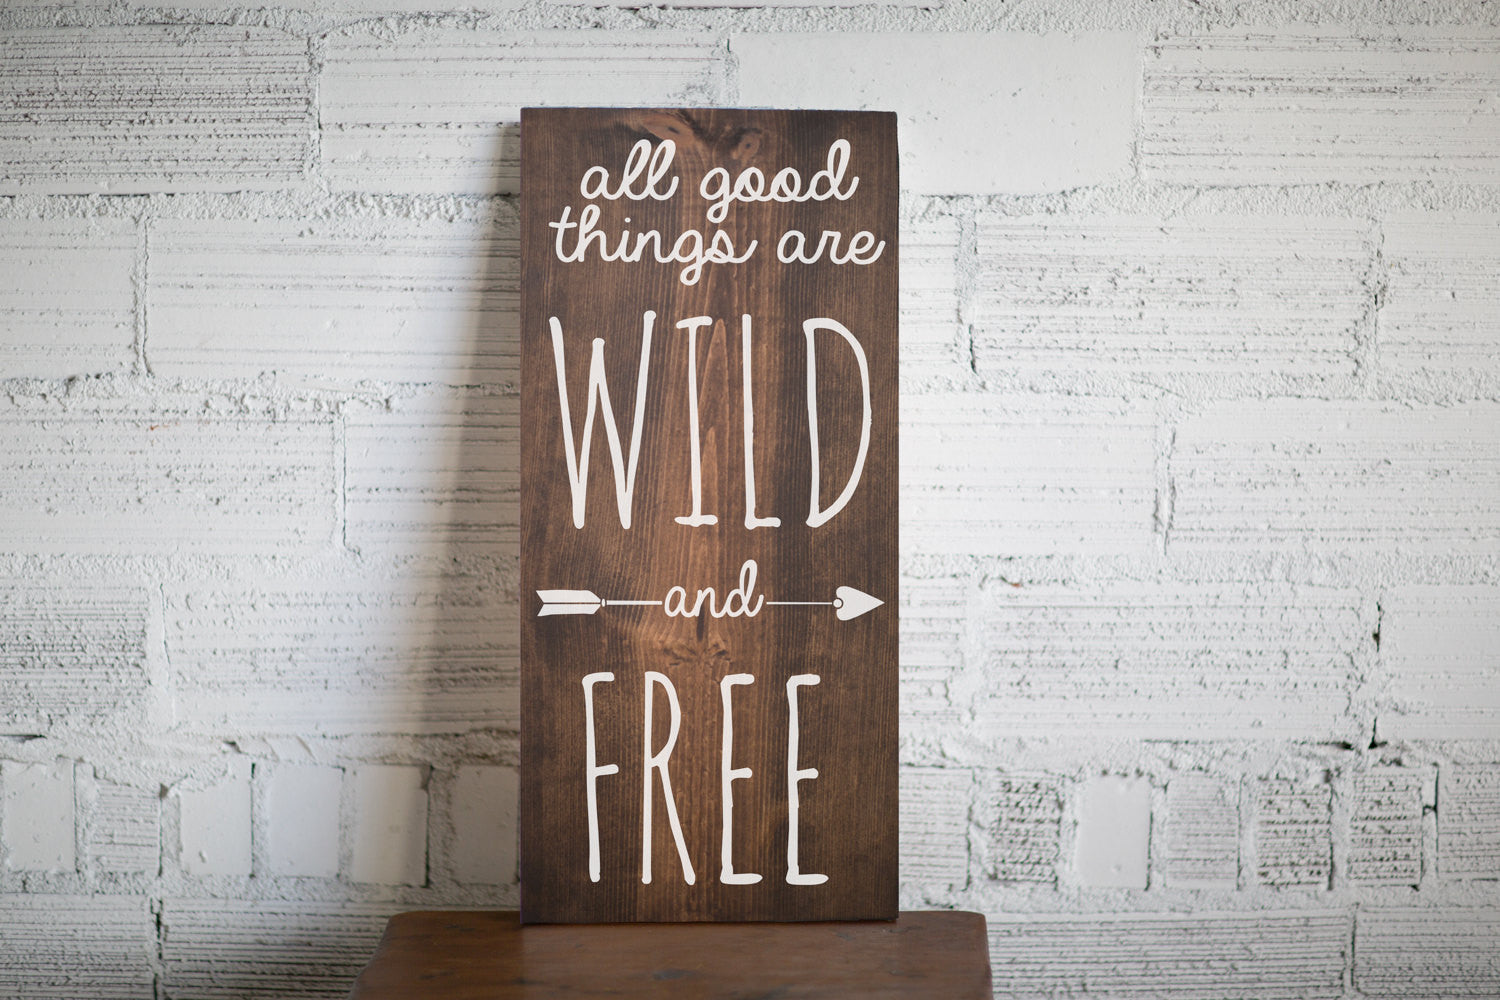 All Good Things Are Wild and Free for Corning Eye Center